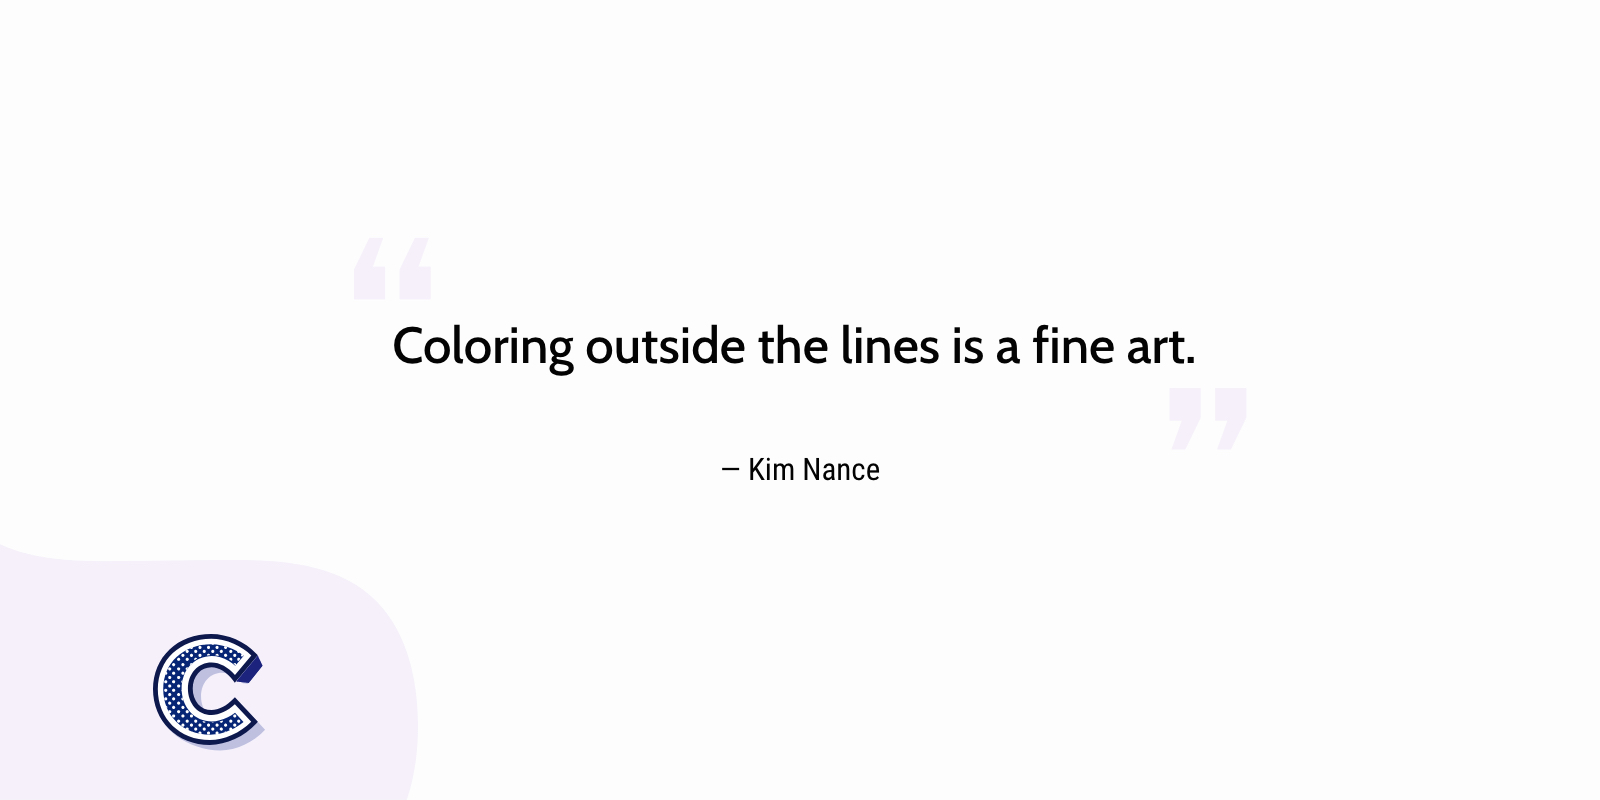 the featured image of the coloring outside the lines is a fine art.